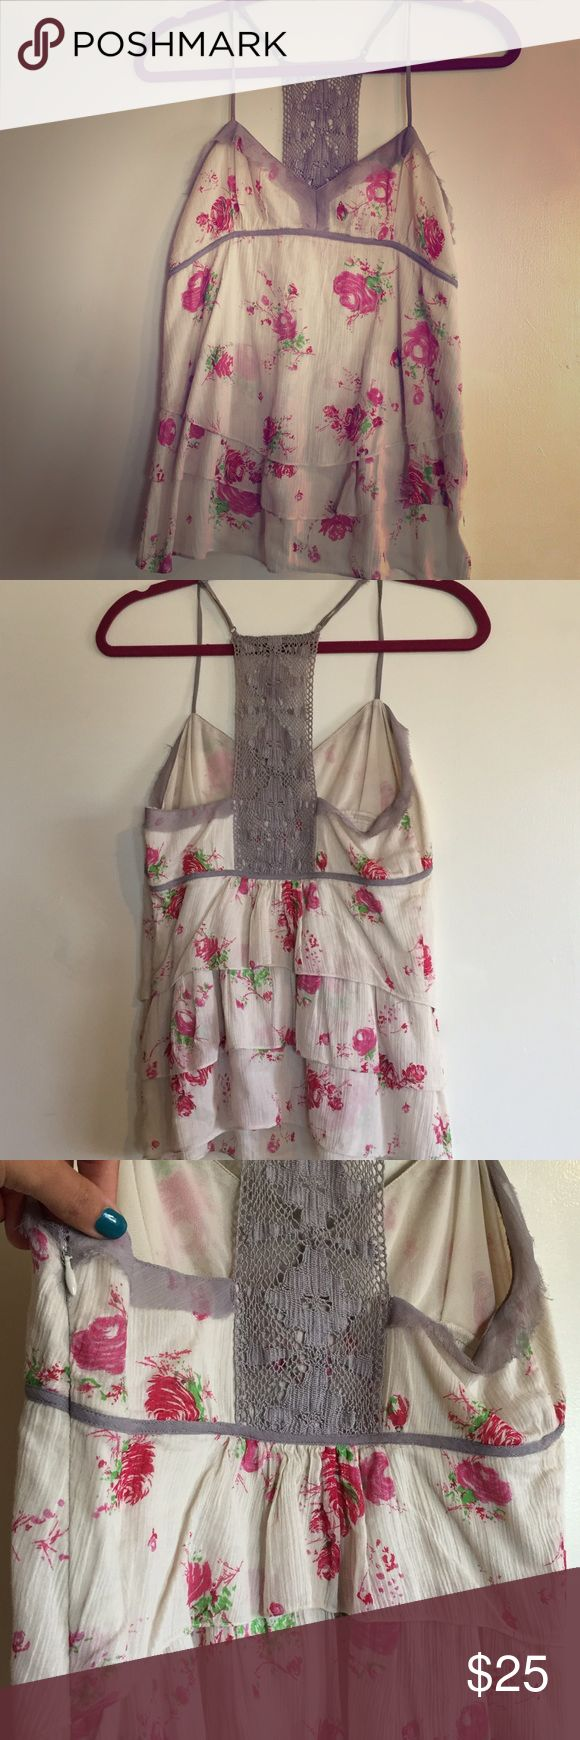 Free People :: Floral Tank; Size 6 Free People :: Floral Tank; Size 6                          Gently used, like new. Classic Free People floral, strappy tank. I love this top. So feminine and fun. Free People Tops Tank Tops